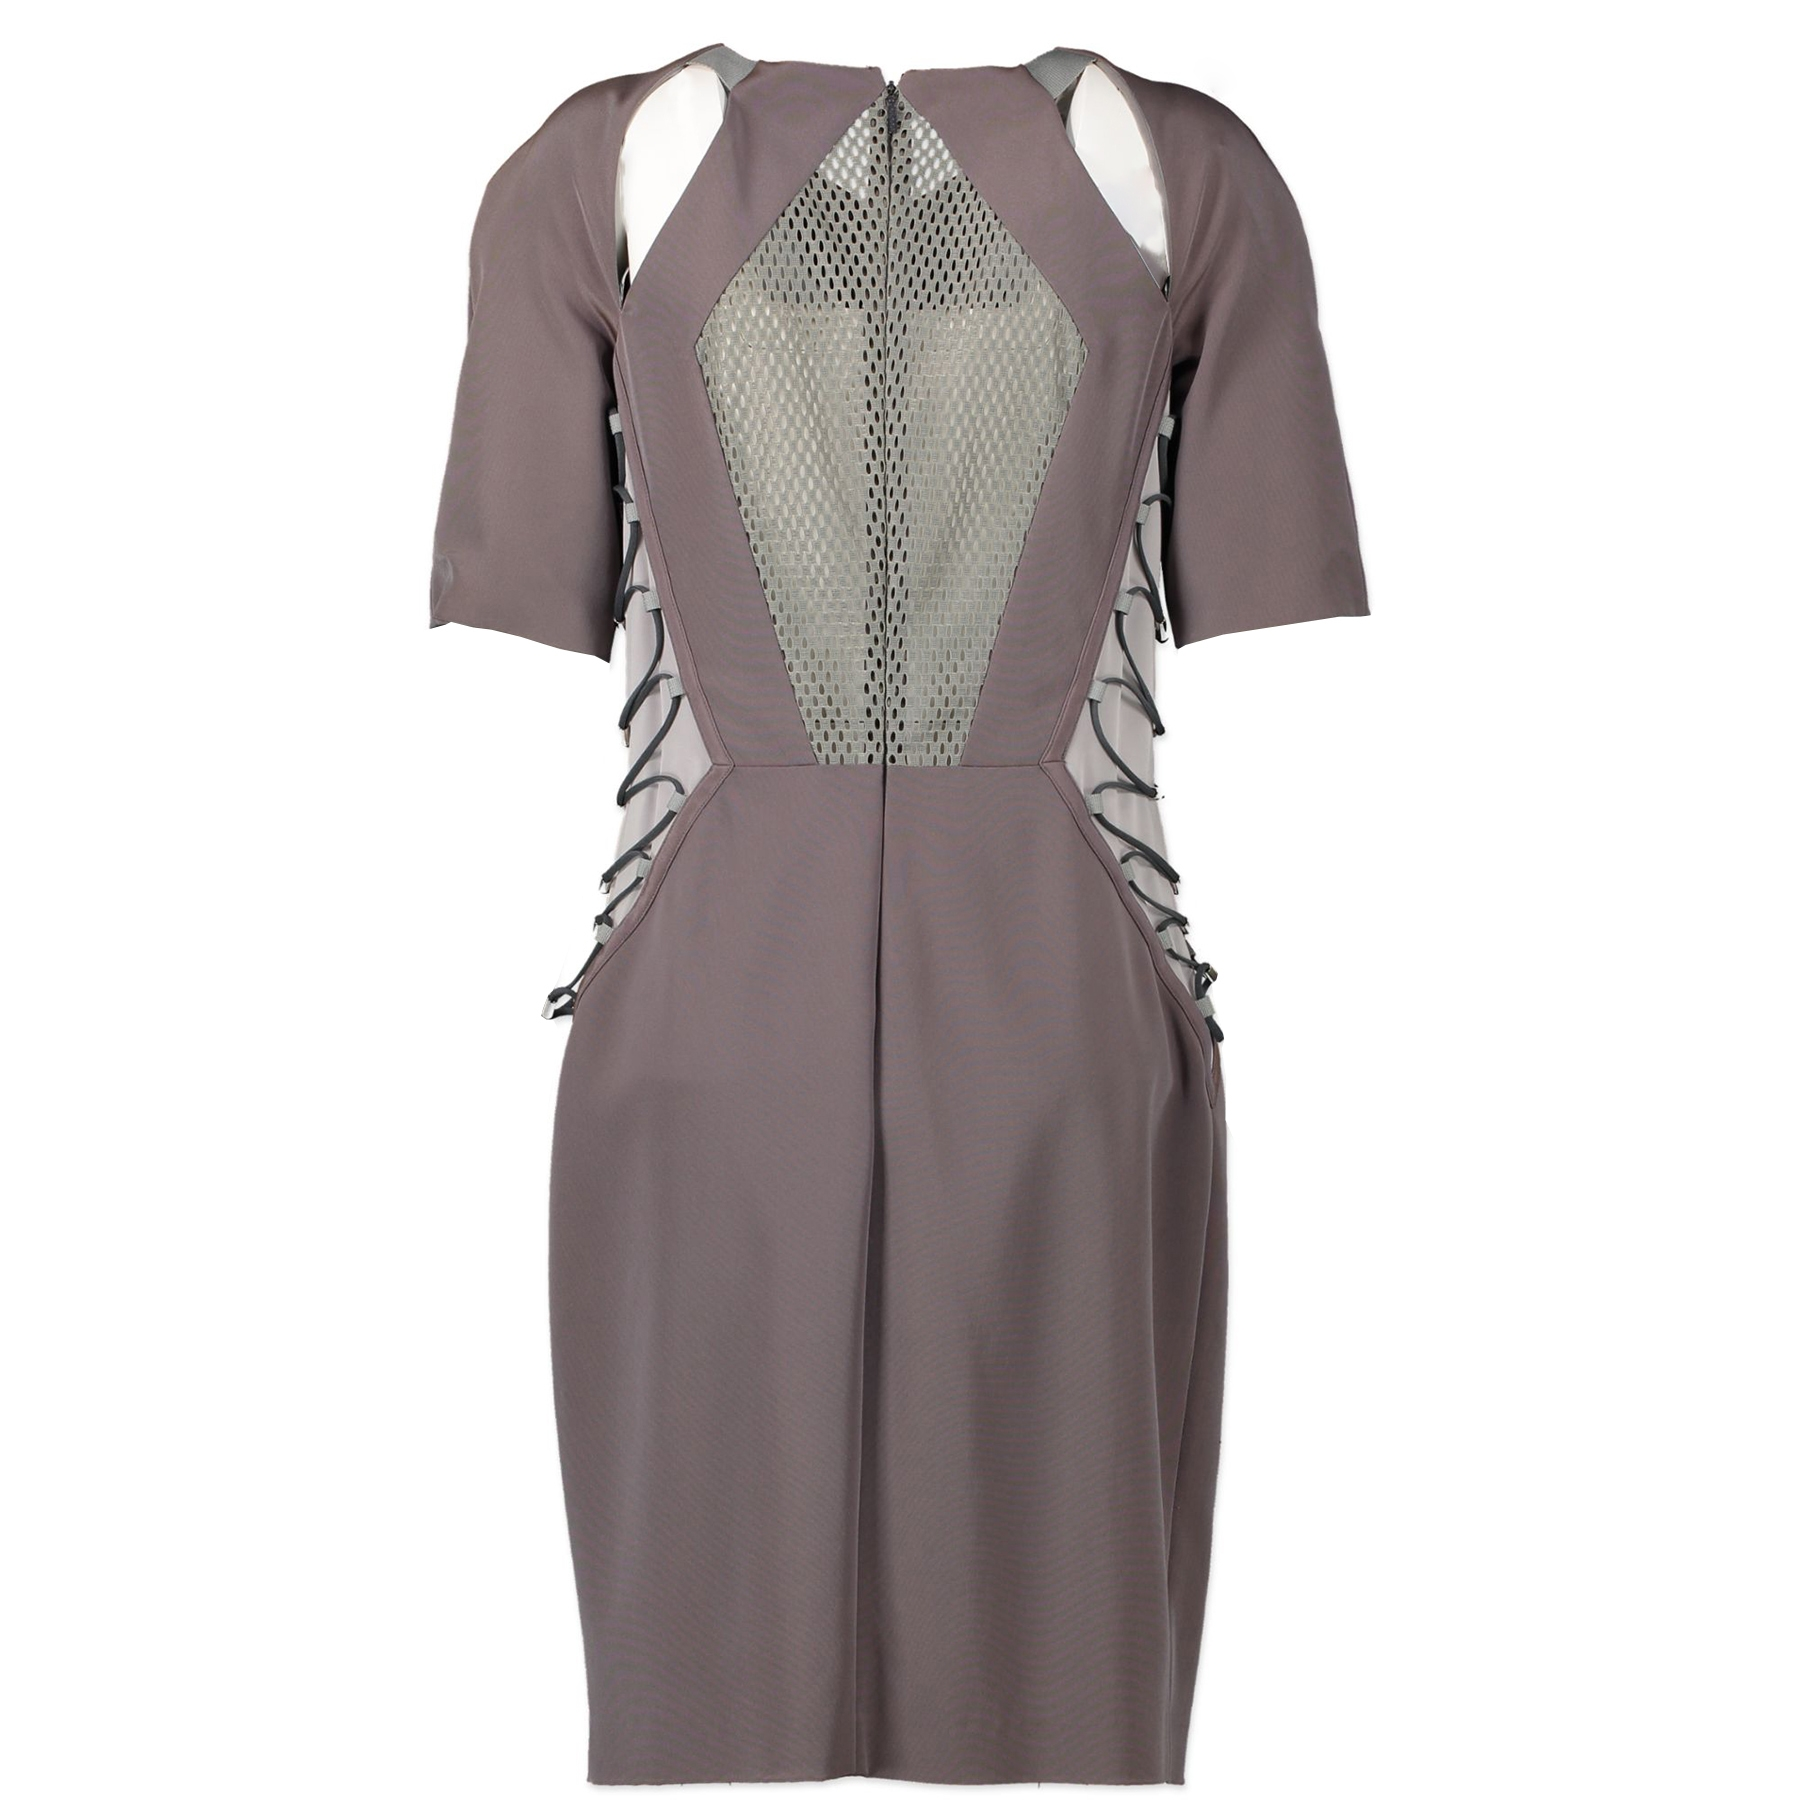 Authentieke tweedehands vintage Gucci Dark Grey Metal Bodycon Dress - Size IT44 koop online webshop LabelLOV